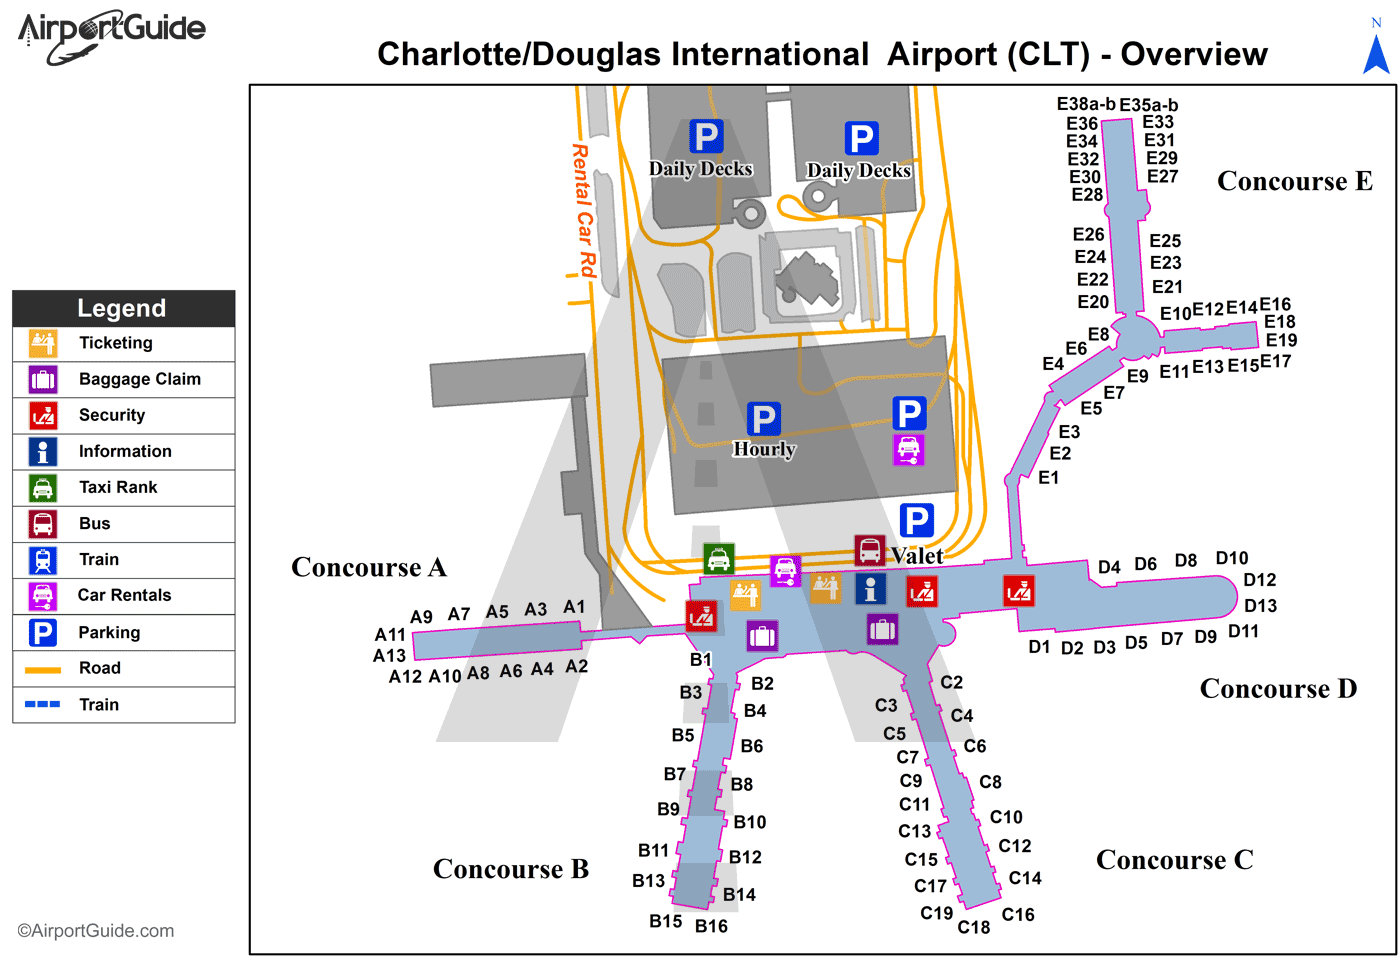 charlotte north carolina airport map Charlotte Douglas International Airport Kclt Clt Airport Guide charlotte north carolina airport map